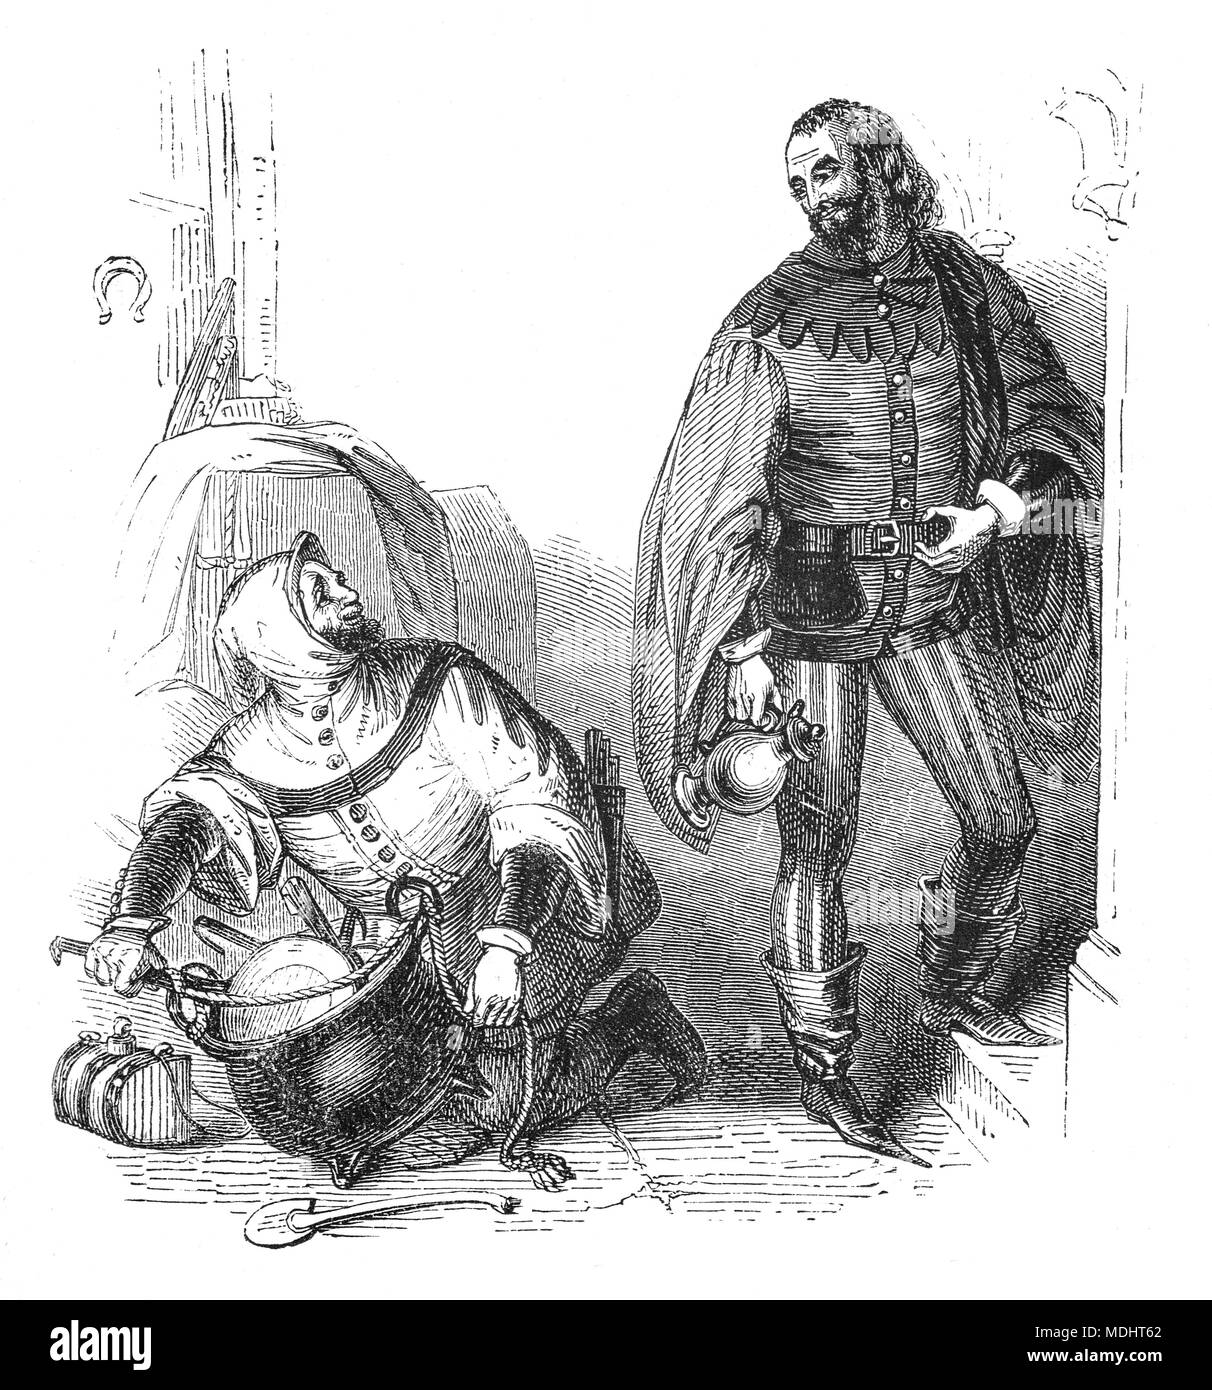 Two of the characters from The Canterbury Tales, a collection of 24 stories written  by Geoffrey Chaucer between 1387 and 1400 when he became Controller of Customs and Justice of Peace.  The tales (mostly written in verse, although some are in prose) are presented as part of a story-telling contest by a group of pilgrims as they travel together on a journey from London to Canterbury to visit the shrine of Saint Thomas Becket at Canterbury Cathedral. The illustration shows the Host and the Cook. - Stock Image